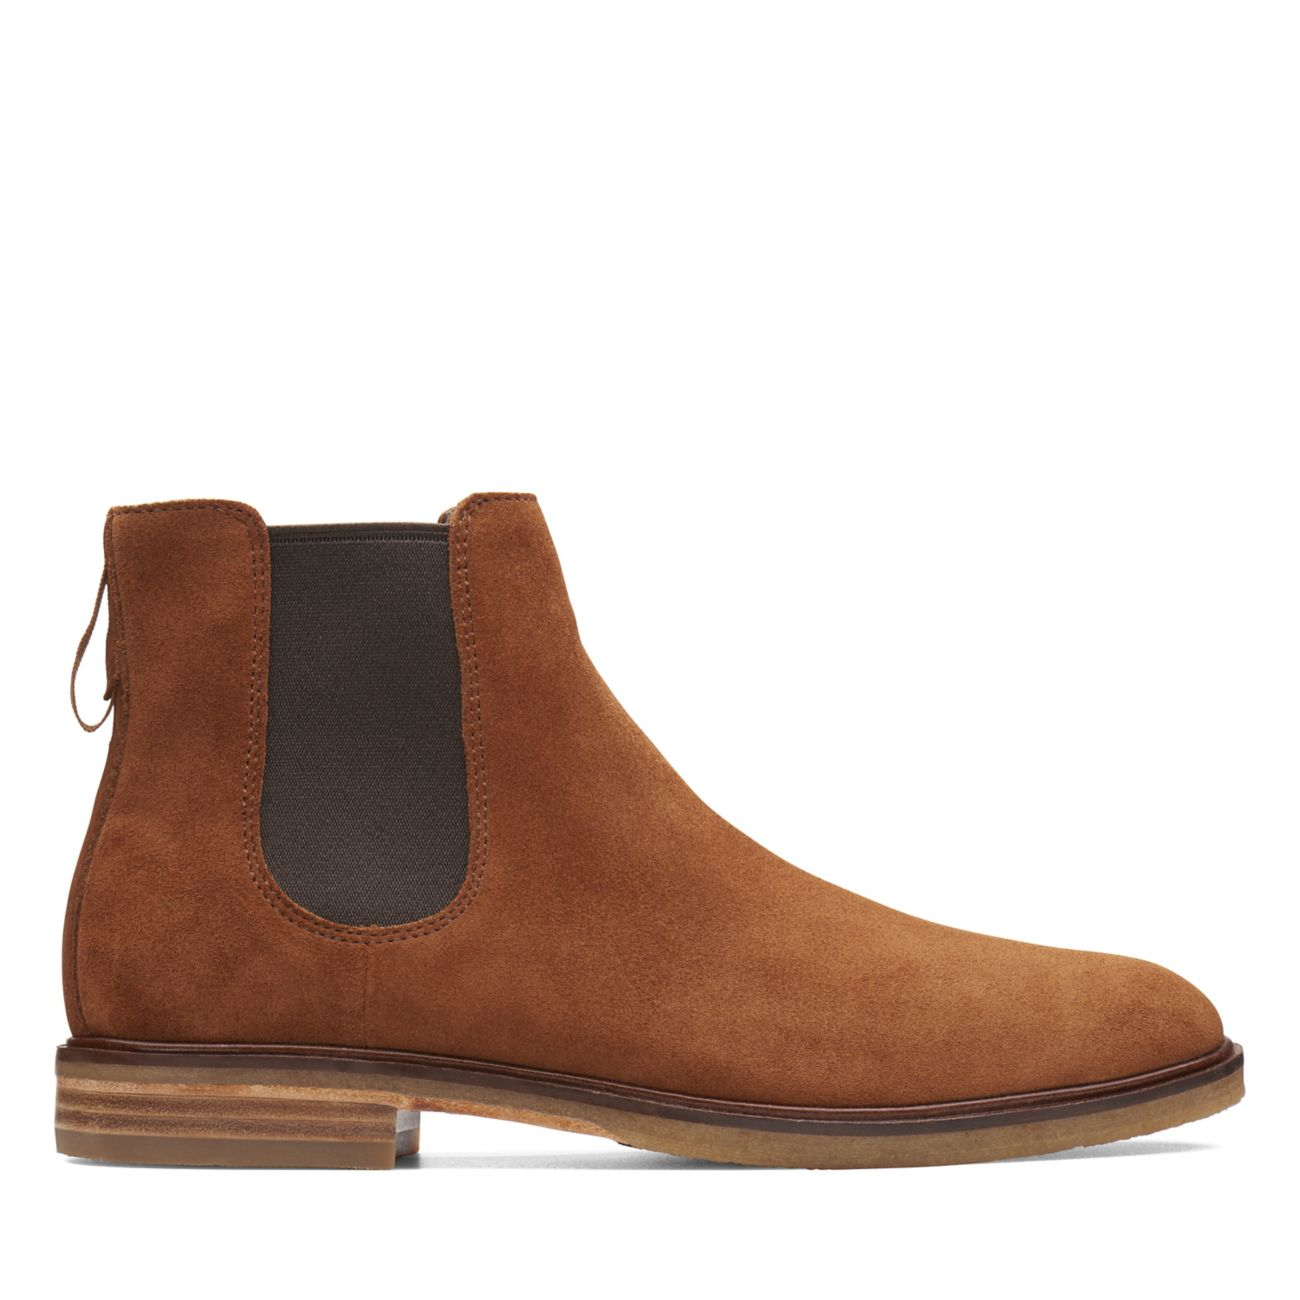 a2c2e009b9adfc Clarkdale Gobi Dark Tan Suede - Mens Chelsea Boots - Clarks® Shoes Official  Site   Clarks